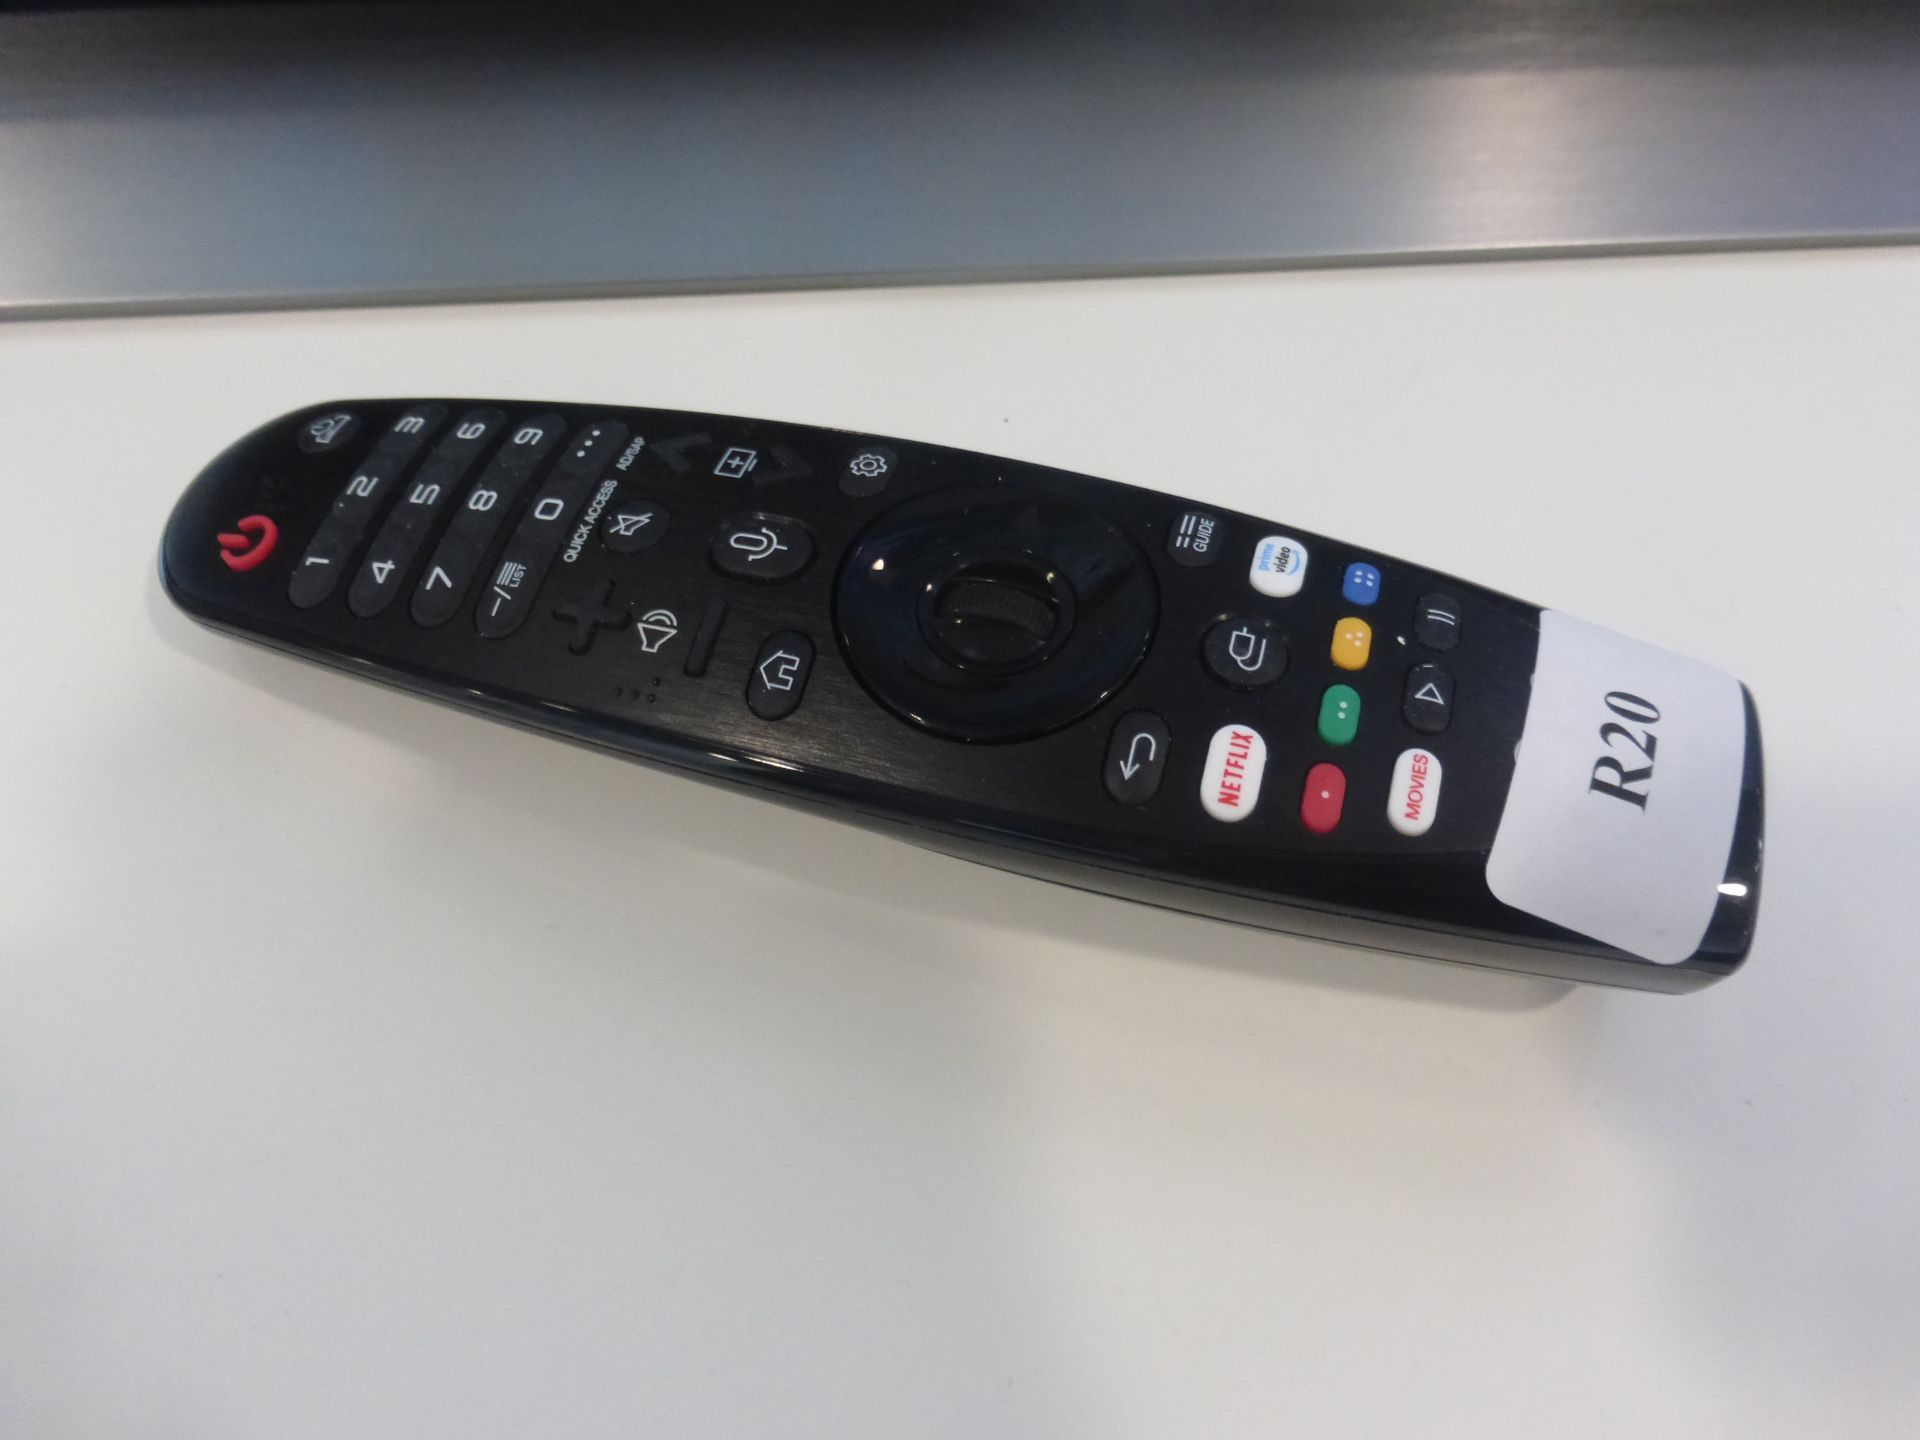 LG 55'' 4K OLED TV Model: OLED55CX5LB, includes remote (R20) and box (B43) Screen has no visible - Image 2 of 2